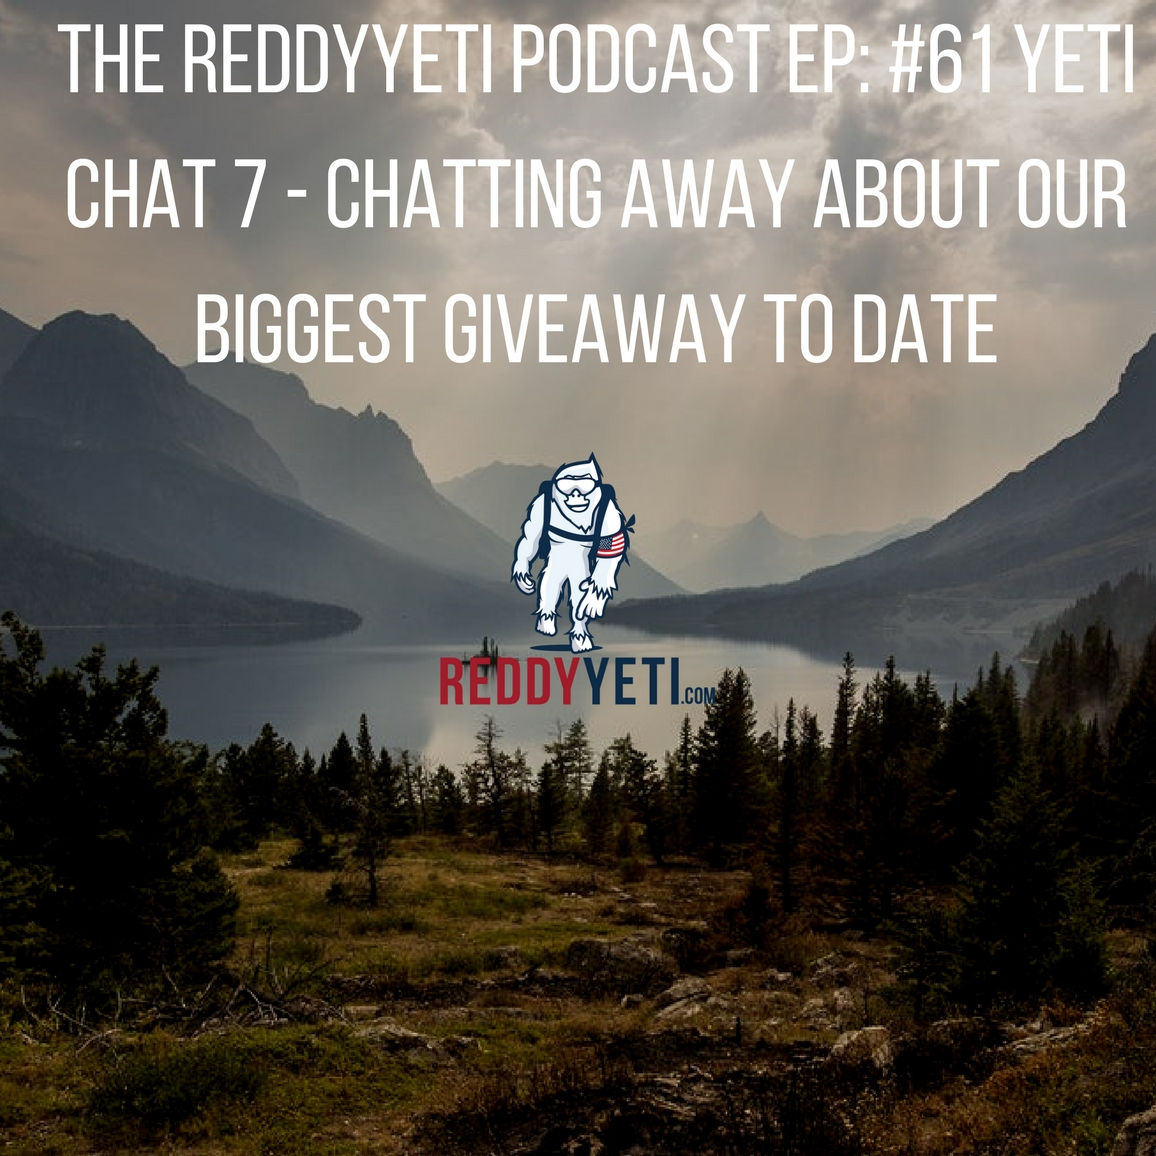 Yeti Chat 7 Podcast image.jpg